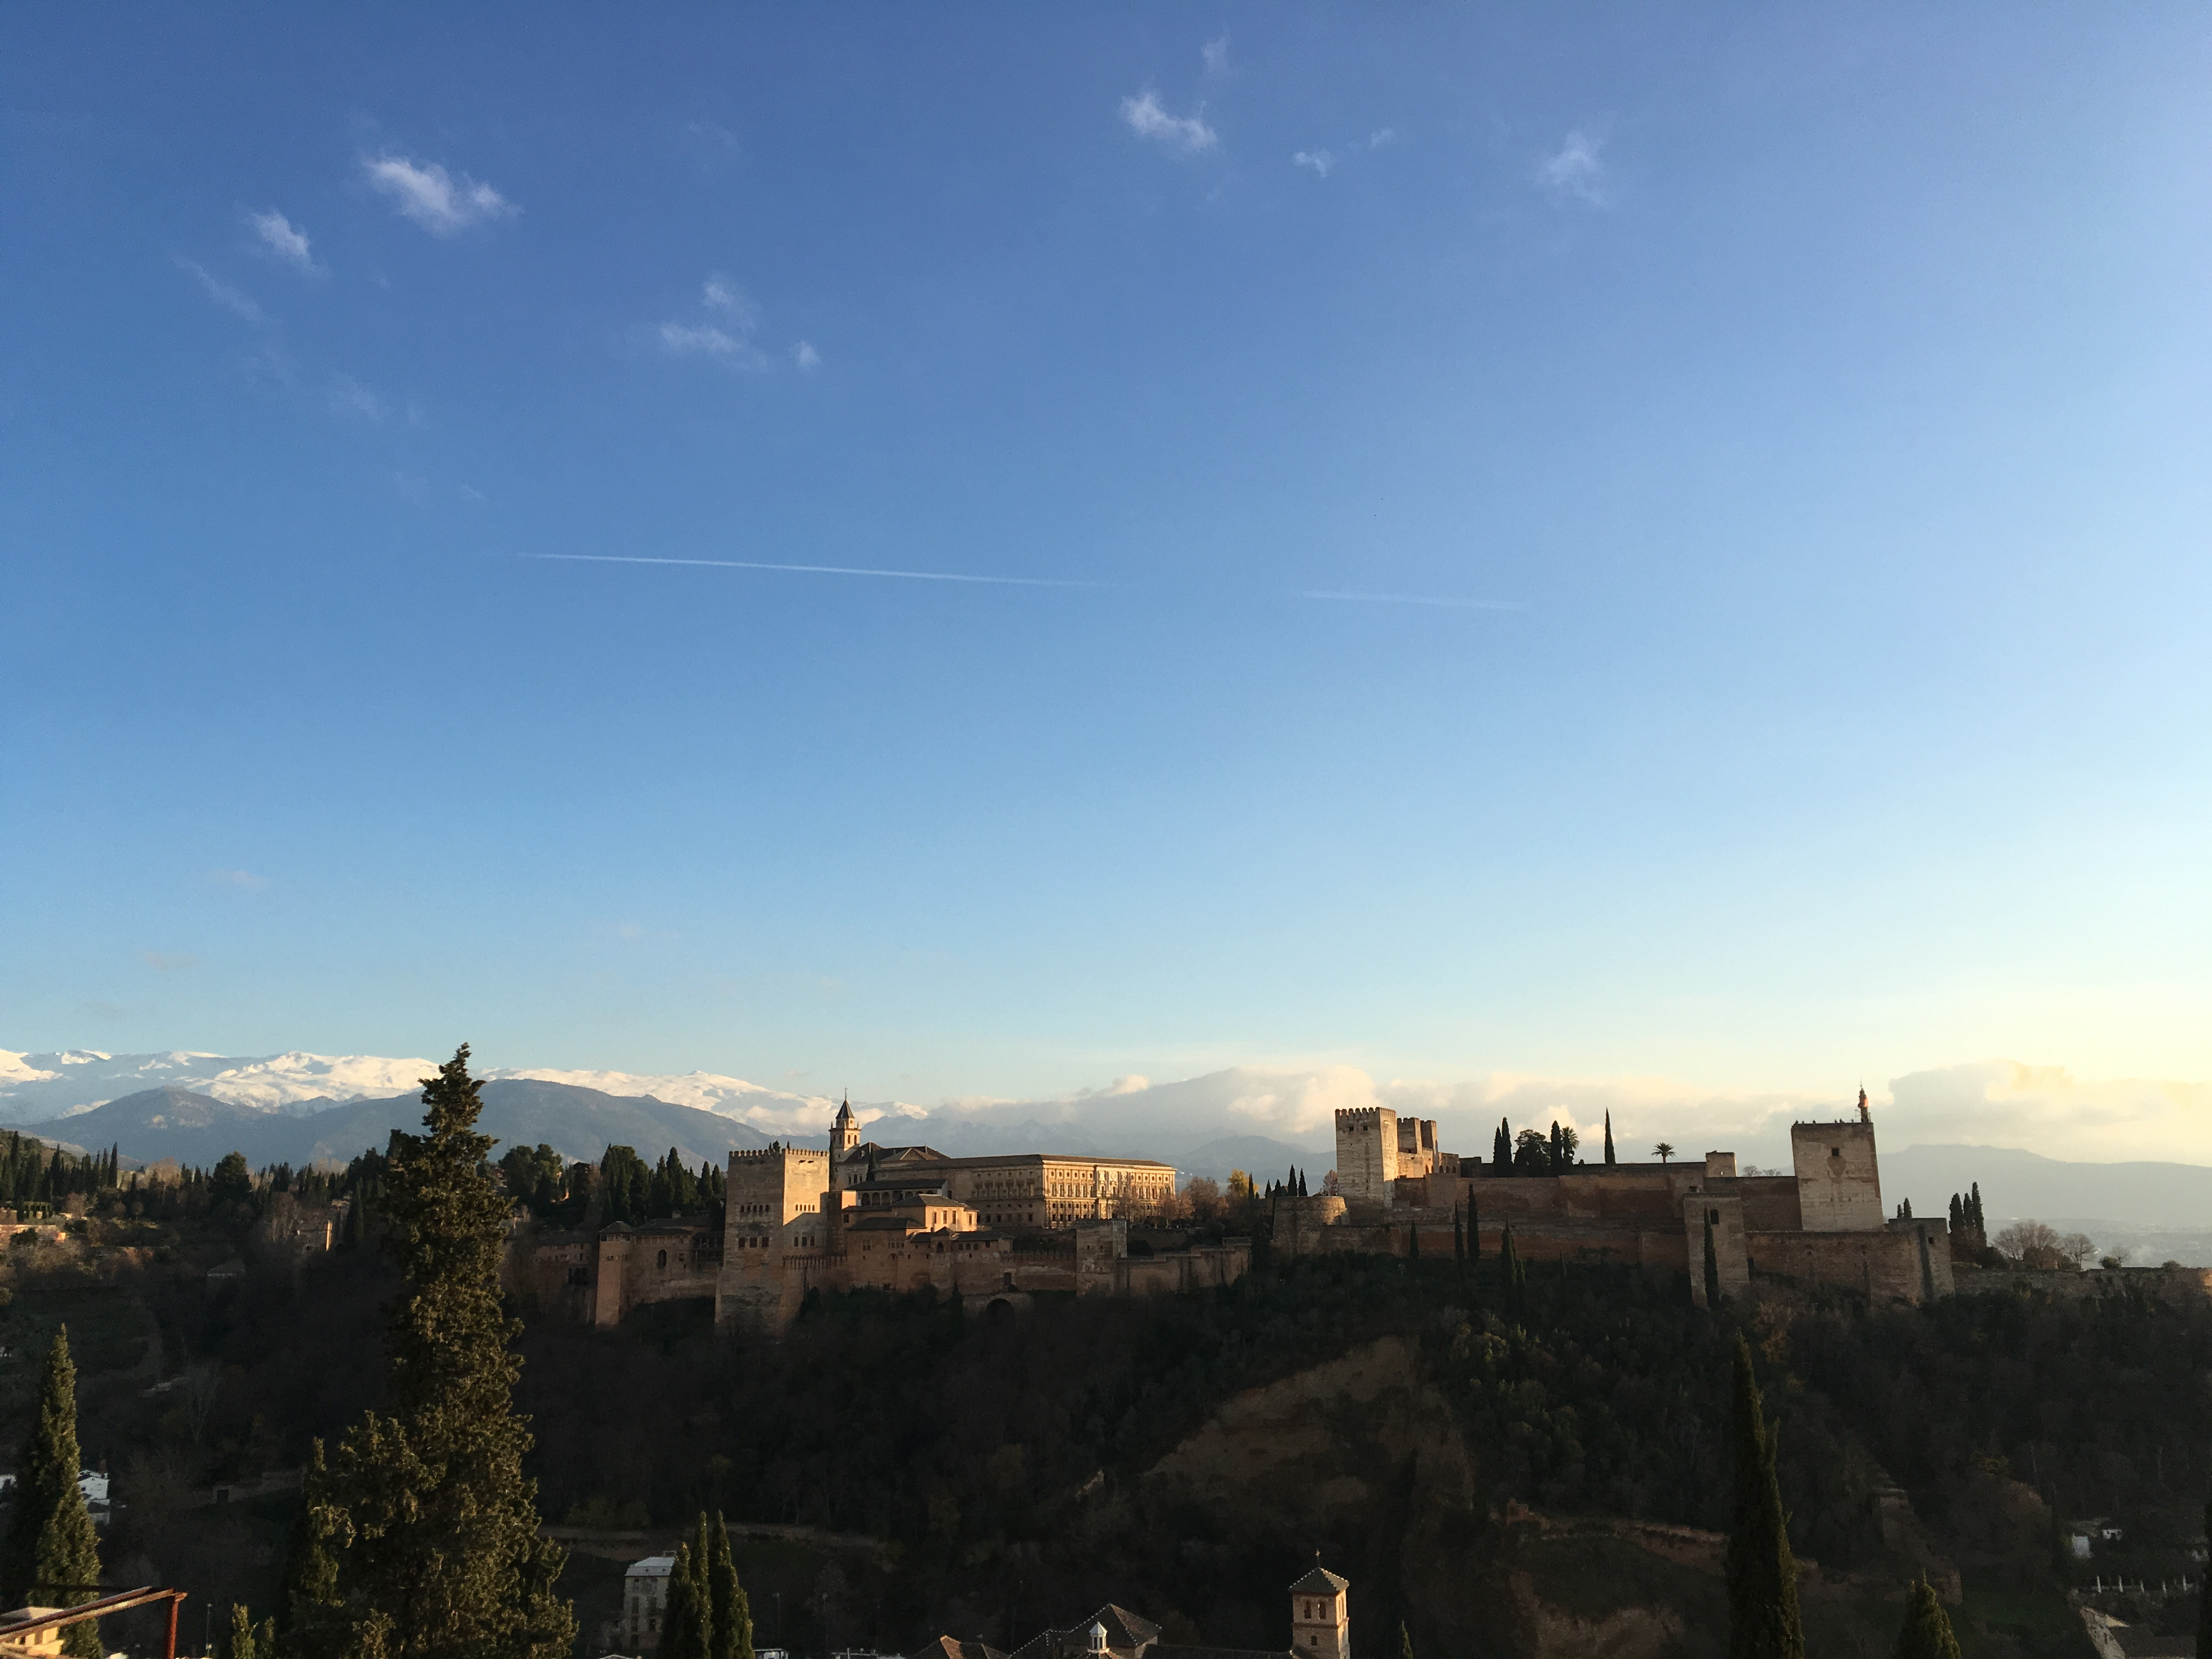 The Alhambra -again, without the polaroid in between ;)